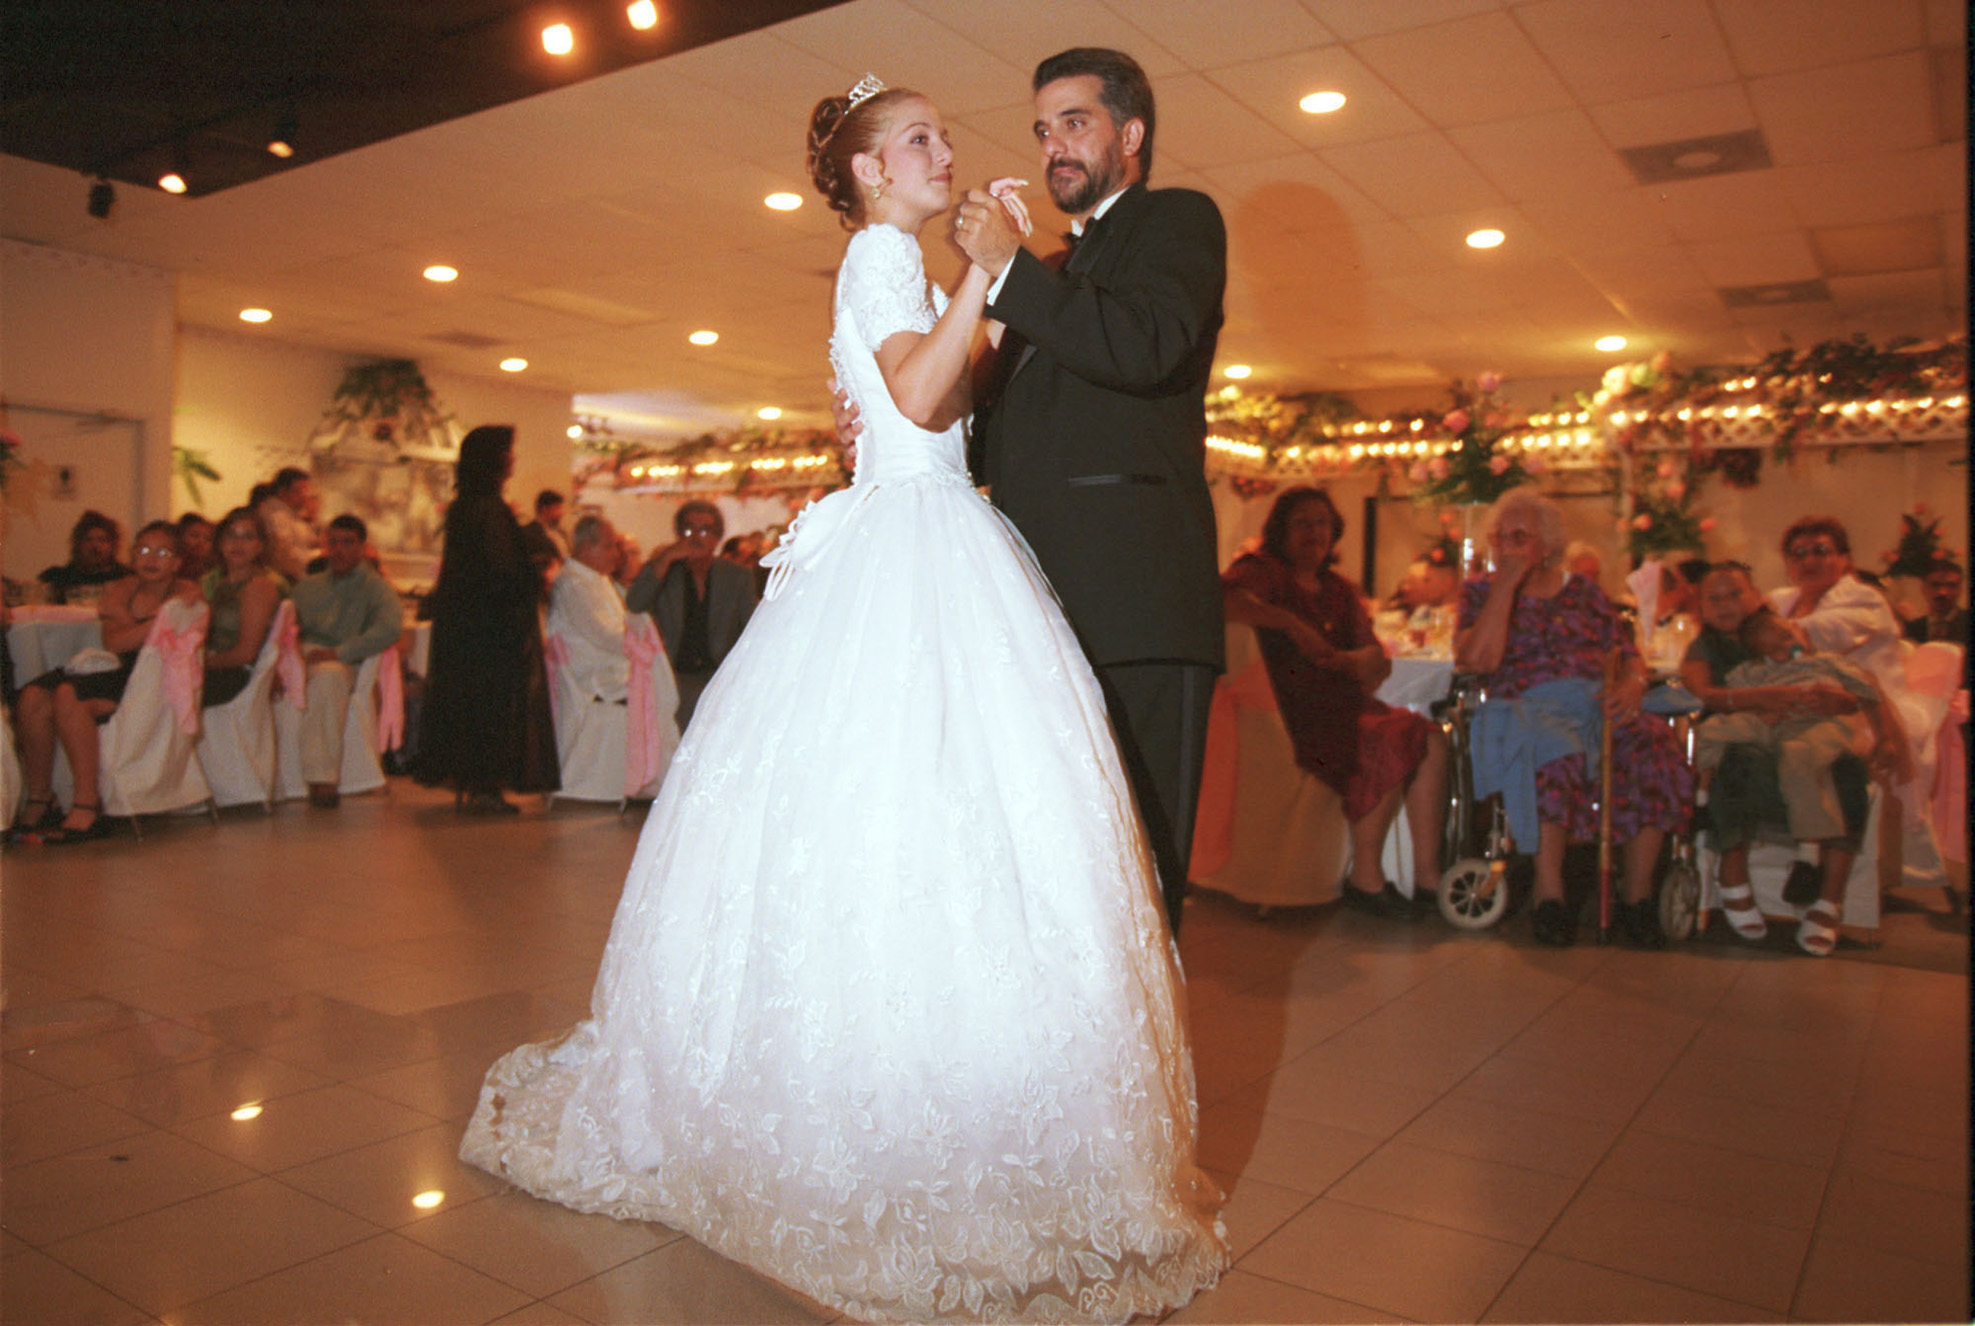 Celeste Vila dances with her father during her quincea era, 1999.